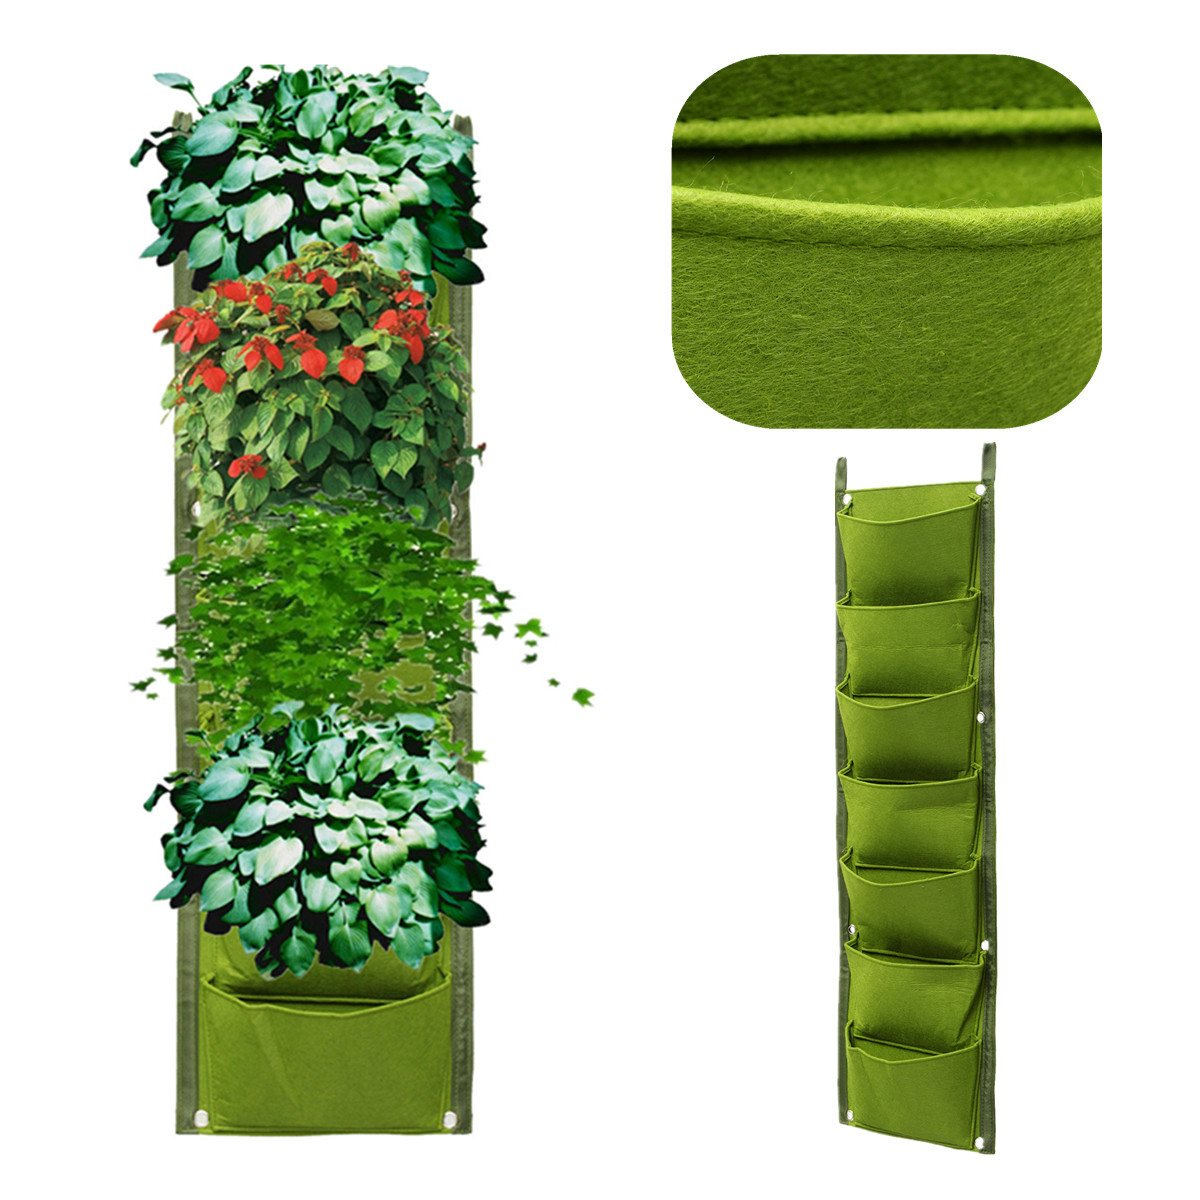 Personable Online Get Cheap Vertical Garden Planter Aliexpresscom  Alibaba  With Glamorous Green Grow Bag Wall Hanging Planting Bags Garden Bag  Pockets Planter Vertical  Garden Vegetable Living Home Supplies With Appealing Brown Rattan Effect Garden Furniture Also Robert Dyas Garden Furniture In Addition Miro Garden And Gardening Signs As Well As What Color Is A Garden Snake Additionally Garden Centres Near Blackburn From Aliexpresscom With   Appealing Online Get Cheap Vertical Garden Planter Aliexpresscom  Alibaba  With Personable Gardening Signs As Well As What Color Is A Garden Snake Additionally Garden Centres Near Blackburn And Glamorous Green Grow Bag Wall Hanging Planting Bags Garden Bag  Pockets Planter Vertical  Garden Vegetable Living Home Supplies Via Aliexpresscom